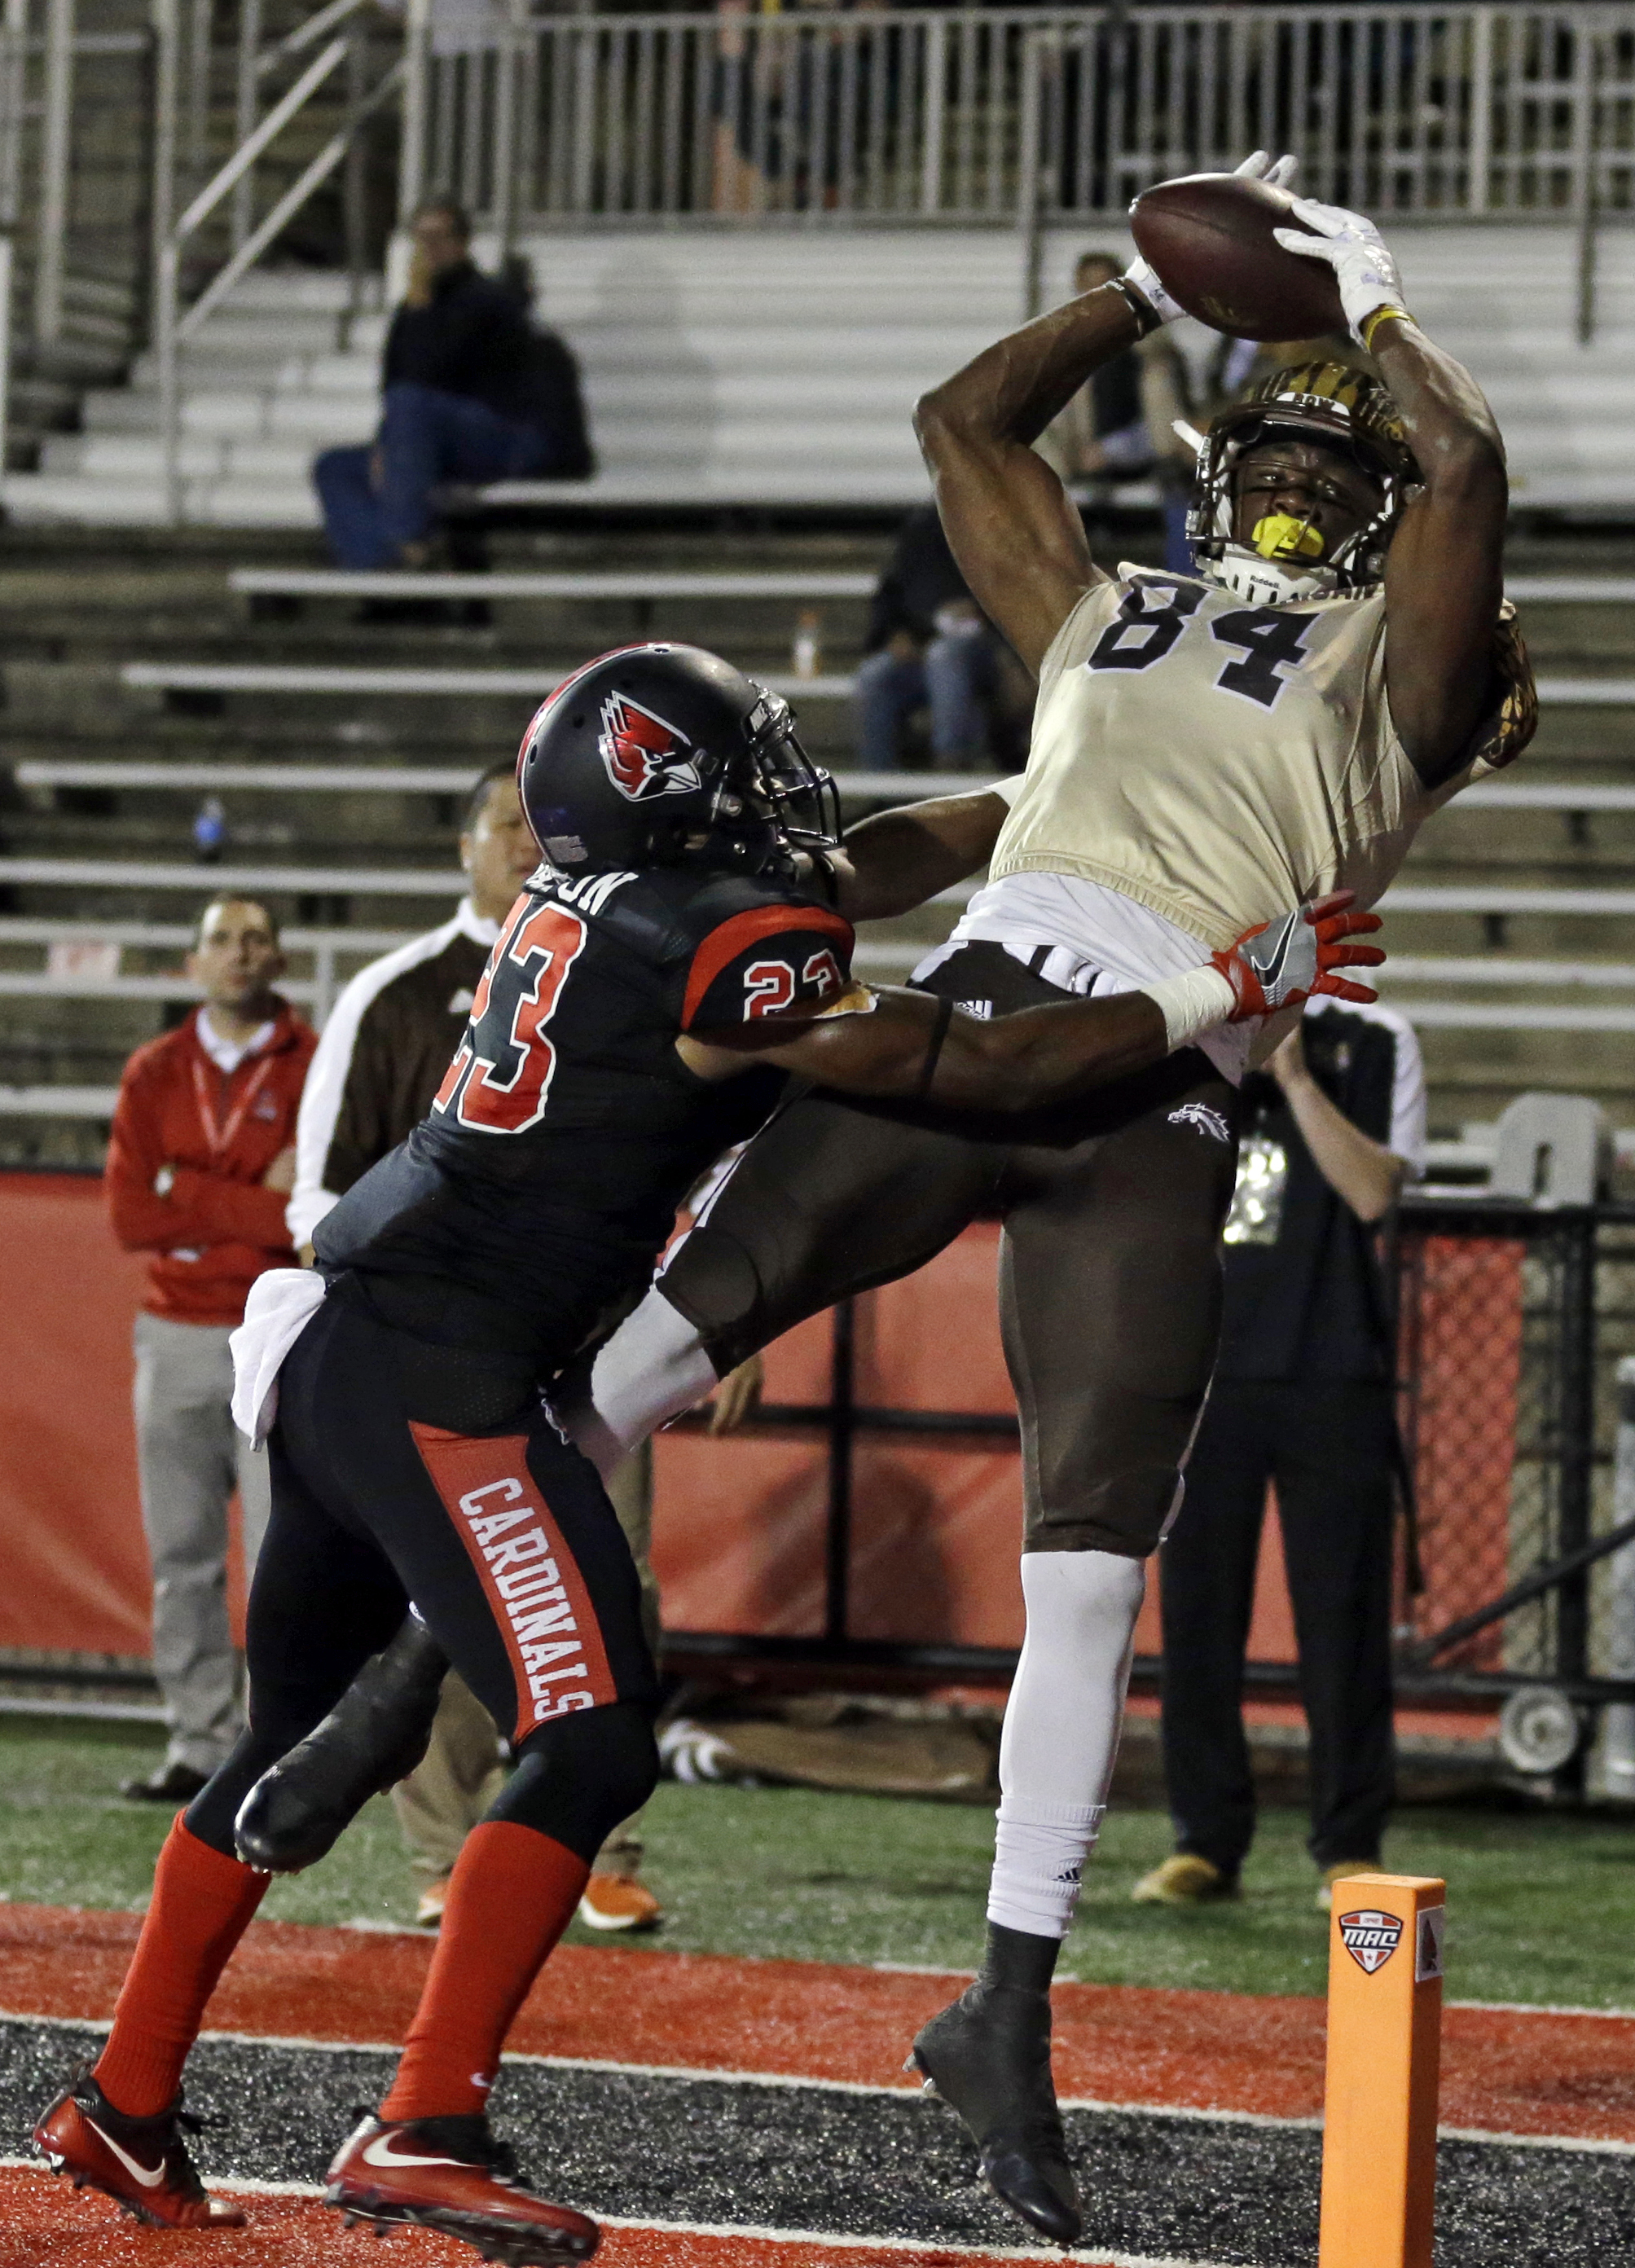 FILE - In this Nov. 1, 2016, file photo, Western Michigan wide receiver Corey Davis (84) attempts a catch over Ball State cornerback Marc Walton (23) in the end zone during the second half of an NCAA college football game in Muncie, Ind. Davis was ruled o